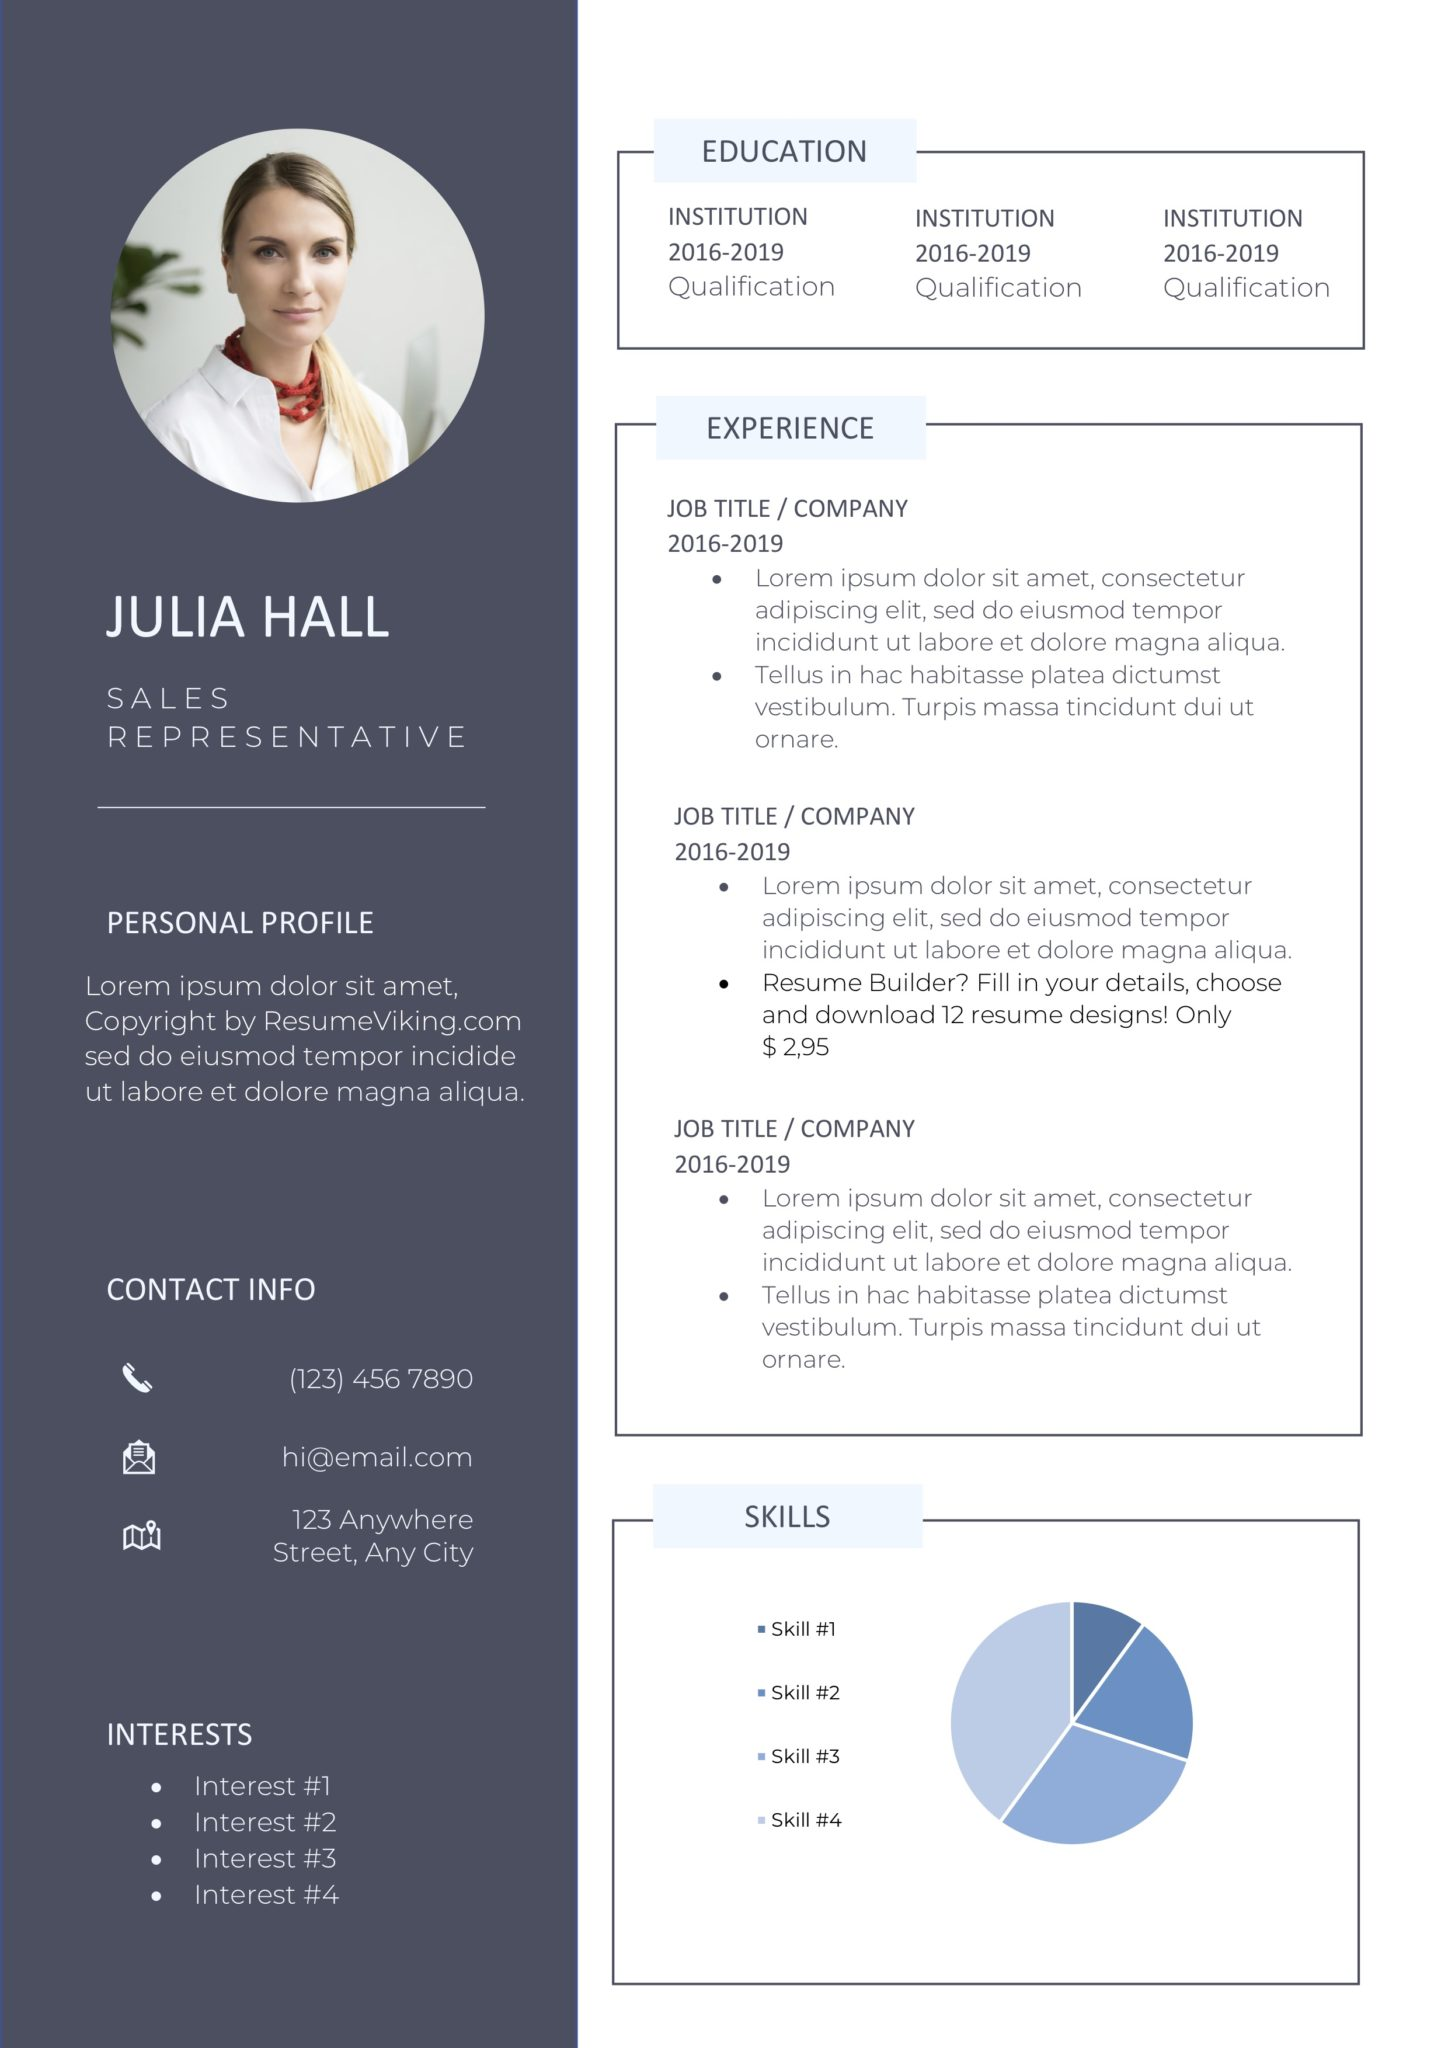 free word resume templates in ms microsoft template resumeviking scaled fatima film Resume Resume Templates 2020 Microsoft Word